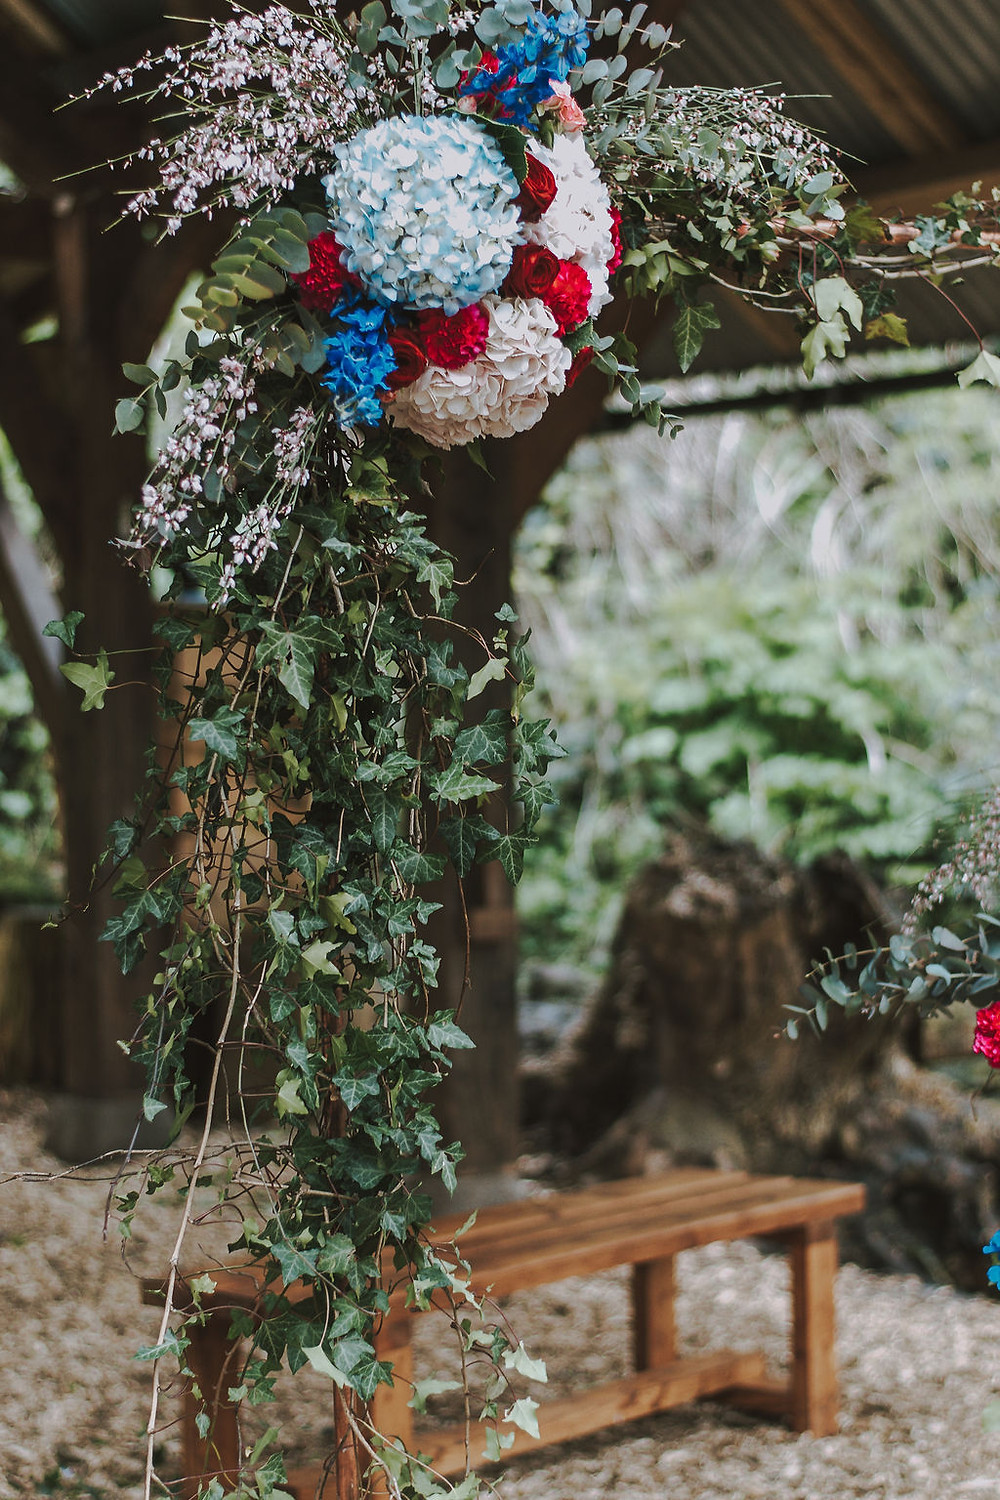 Outdoor red blue pink floral arch installation wedding inspiration